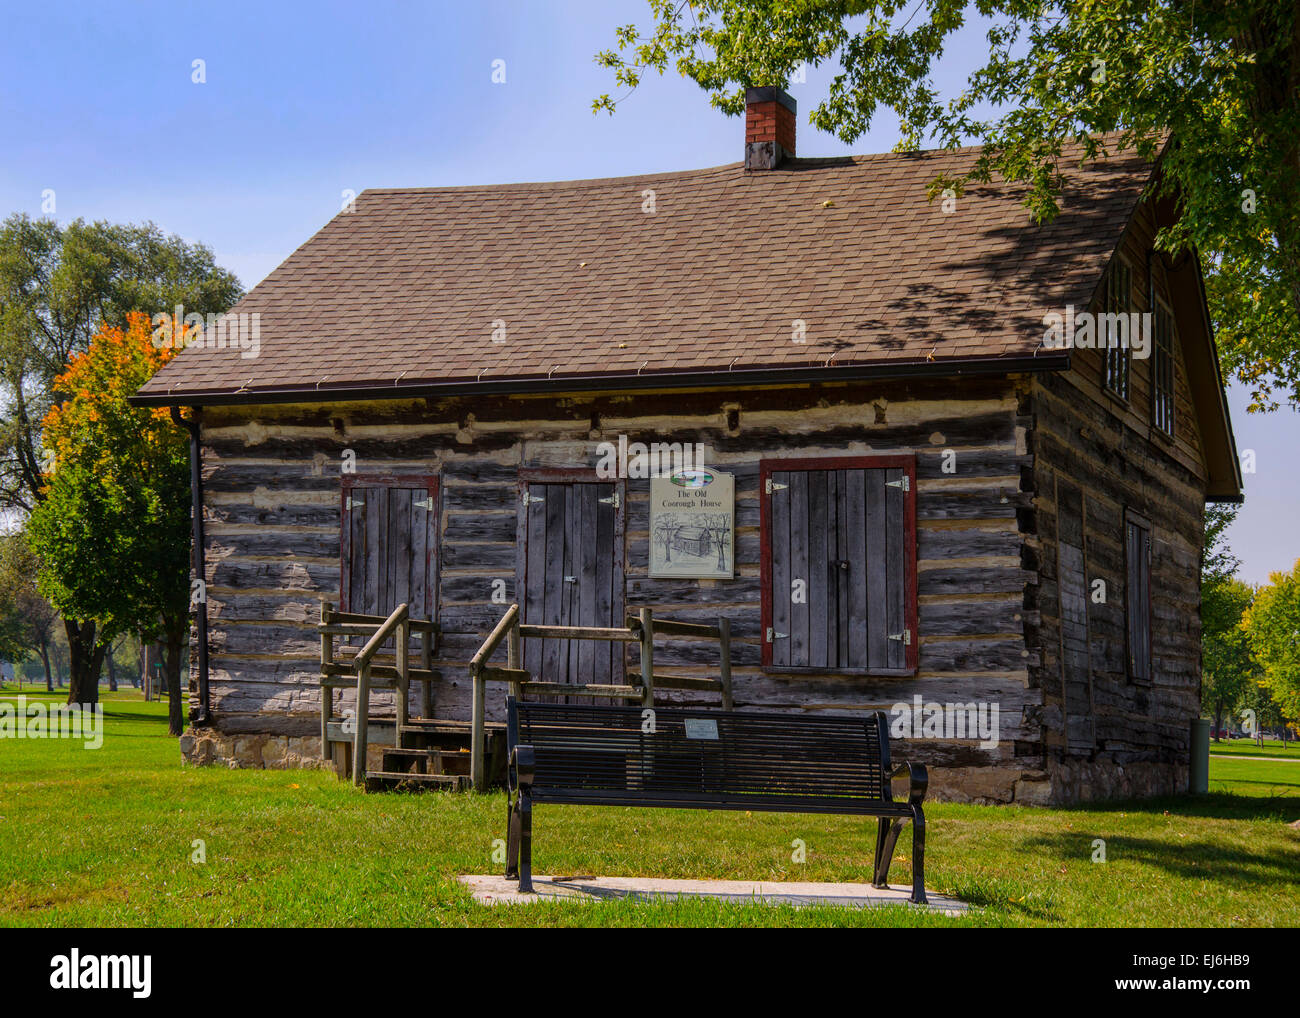 The old courdough house in prairie du chien wisconsin is a french canadian log cabin